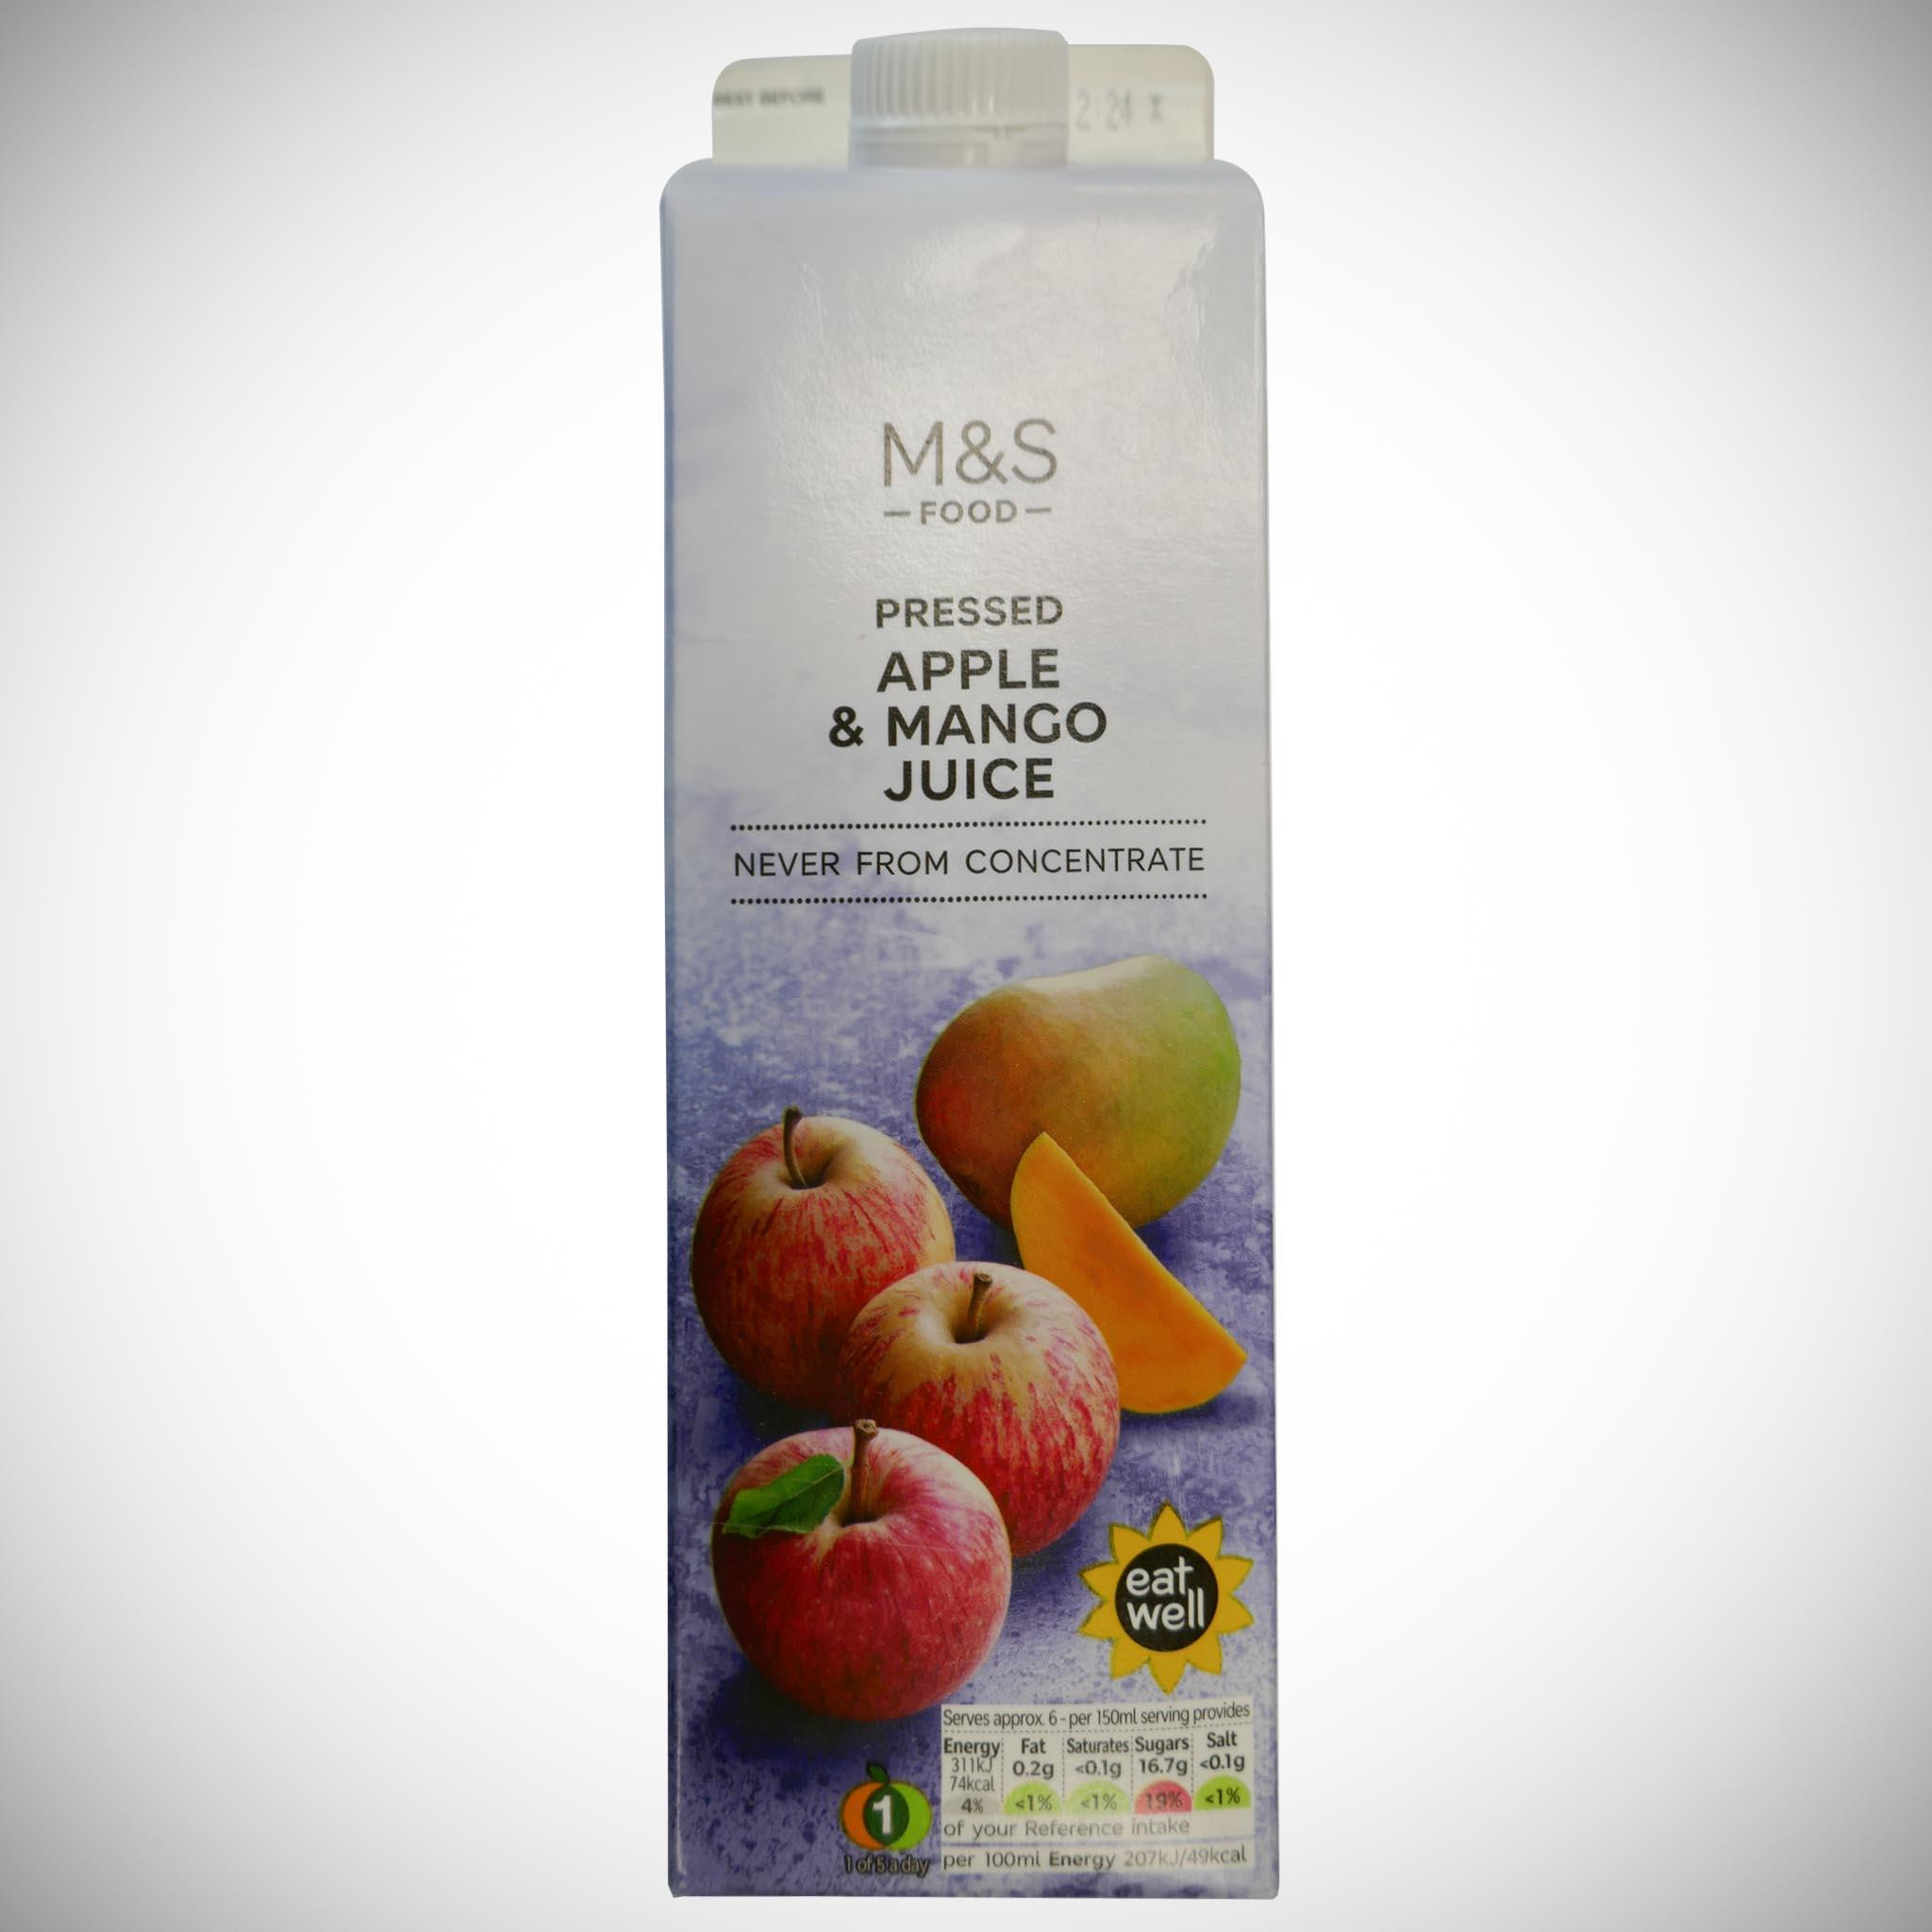 Apple & Mango Juice (Never From Concentrate) 1 litre